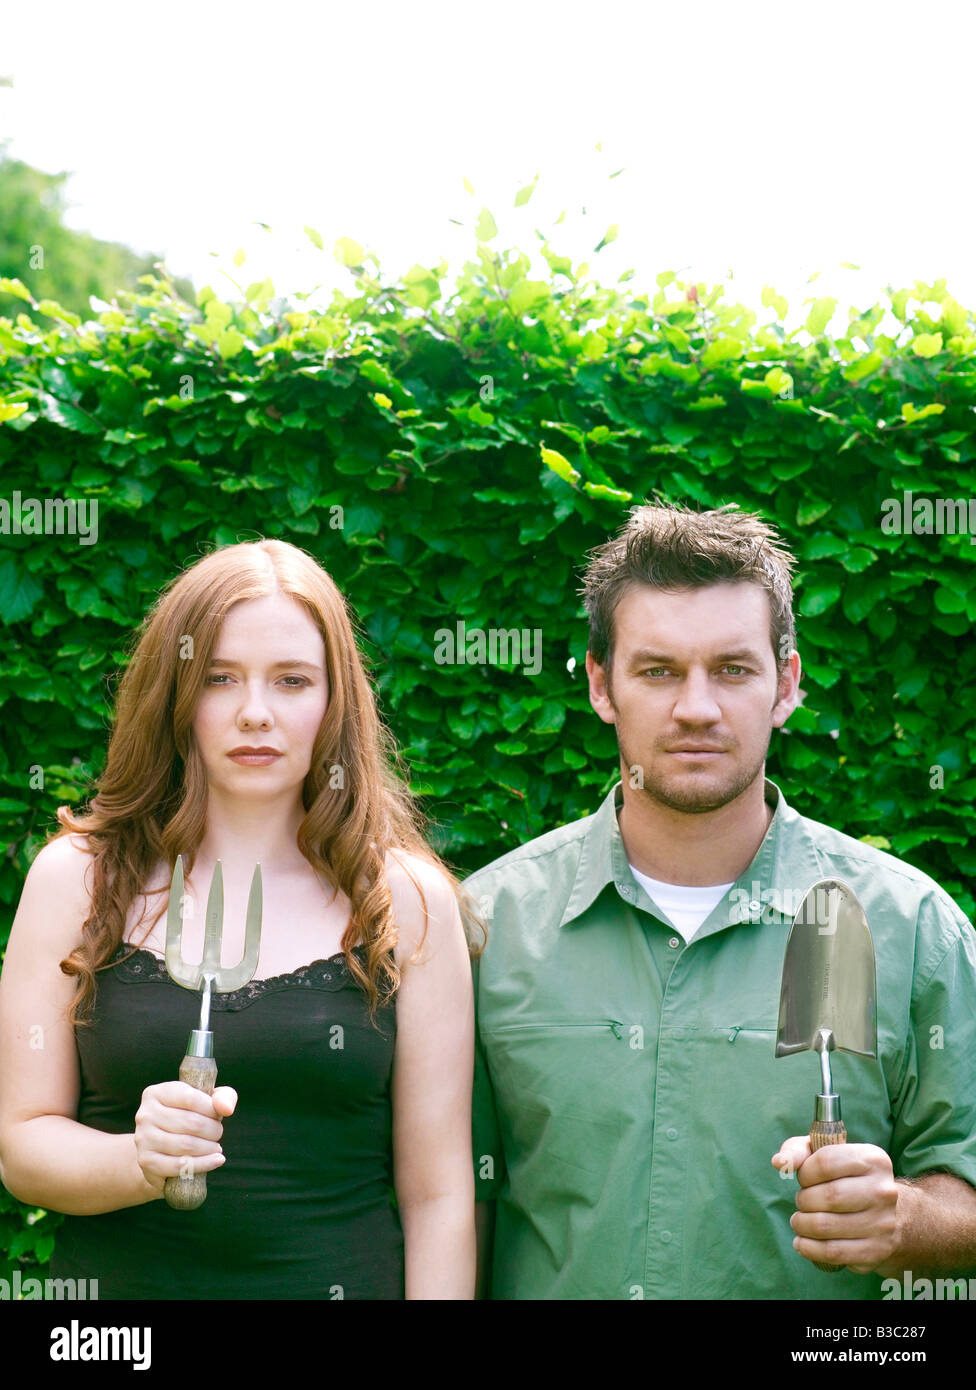 A couple in a garden standing with trowel and fork - Stock Image